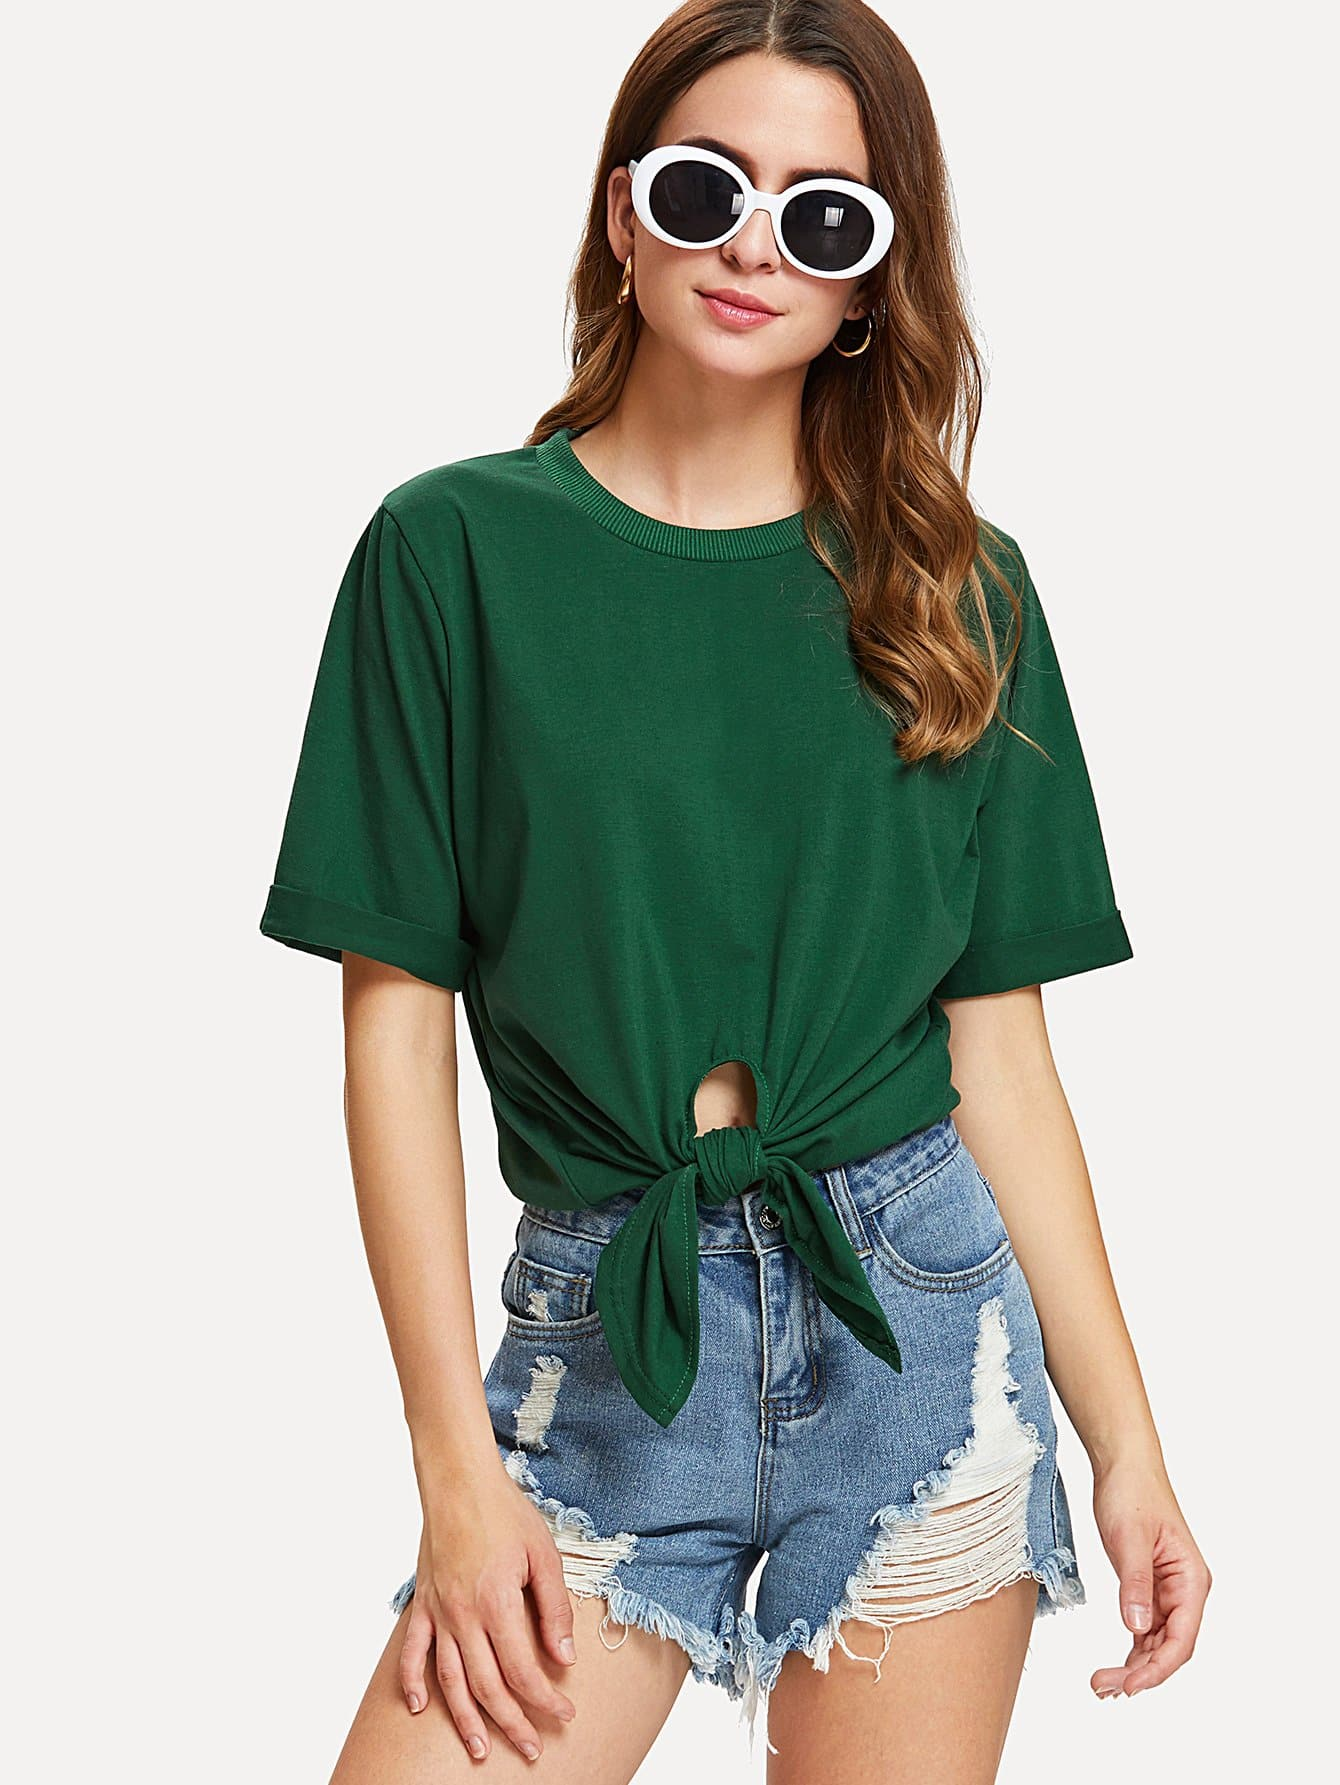 Knot Front Rolled Cuff Tee knot front tee